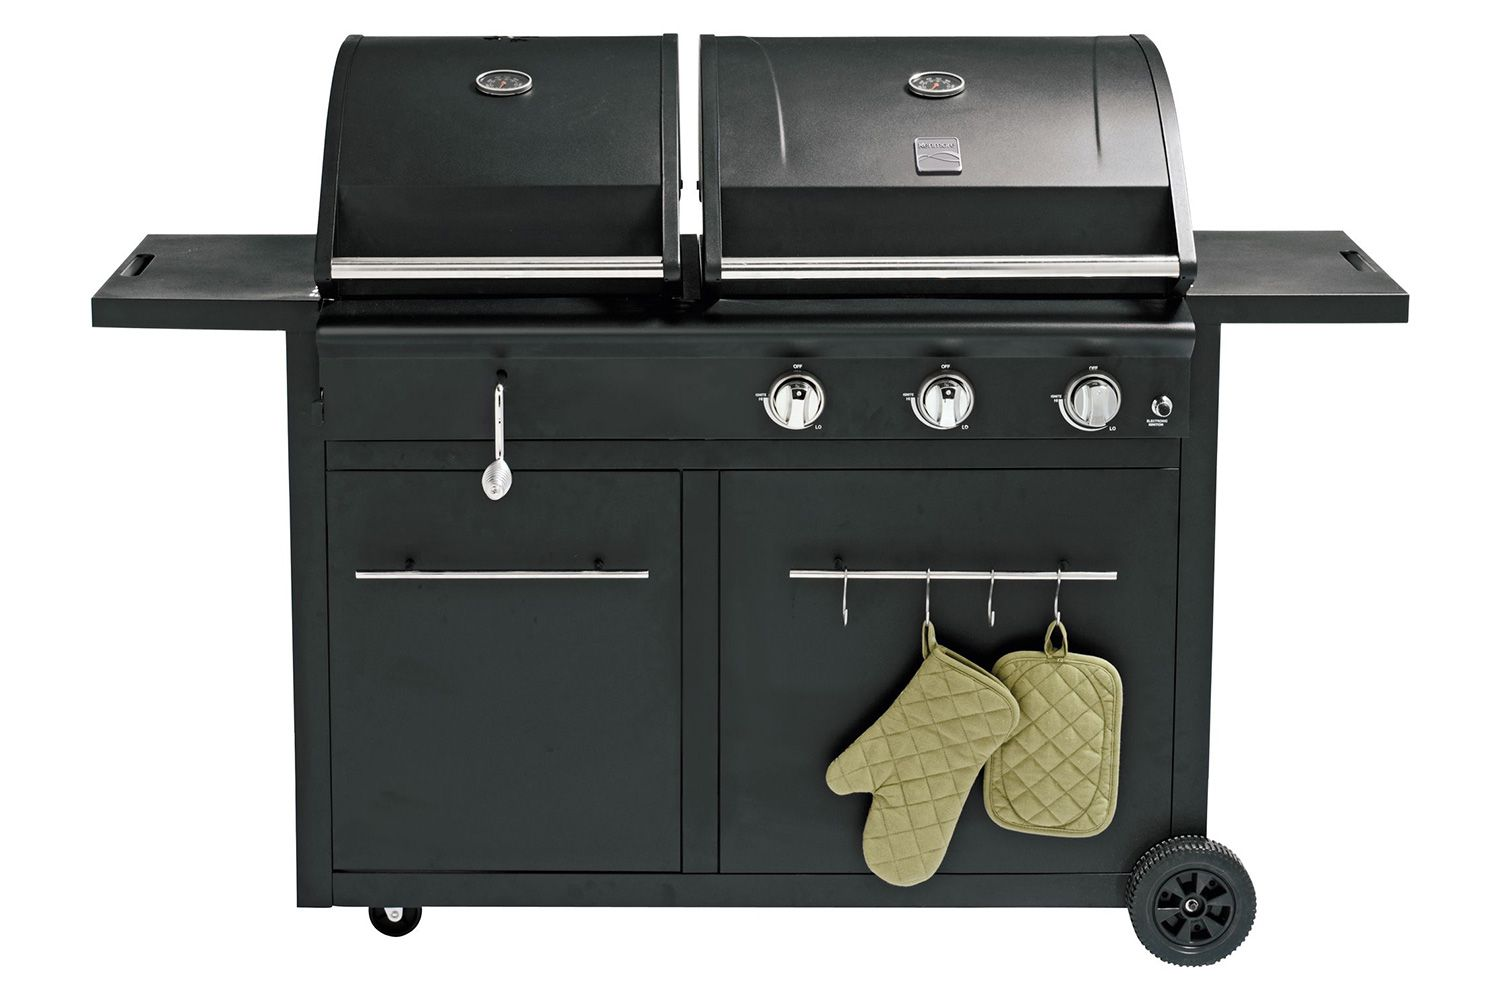 Nexgrill 3 Burner Charcoal Gas Combo Grill Review